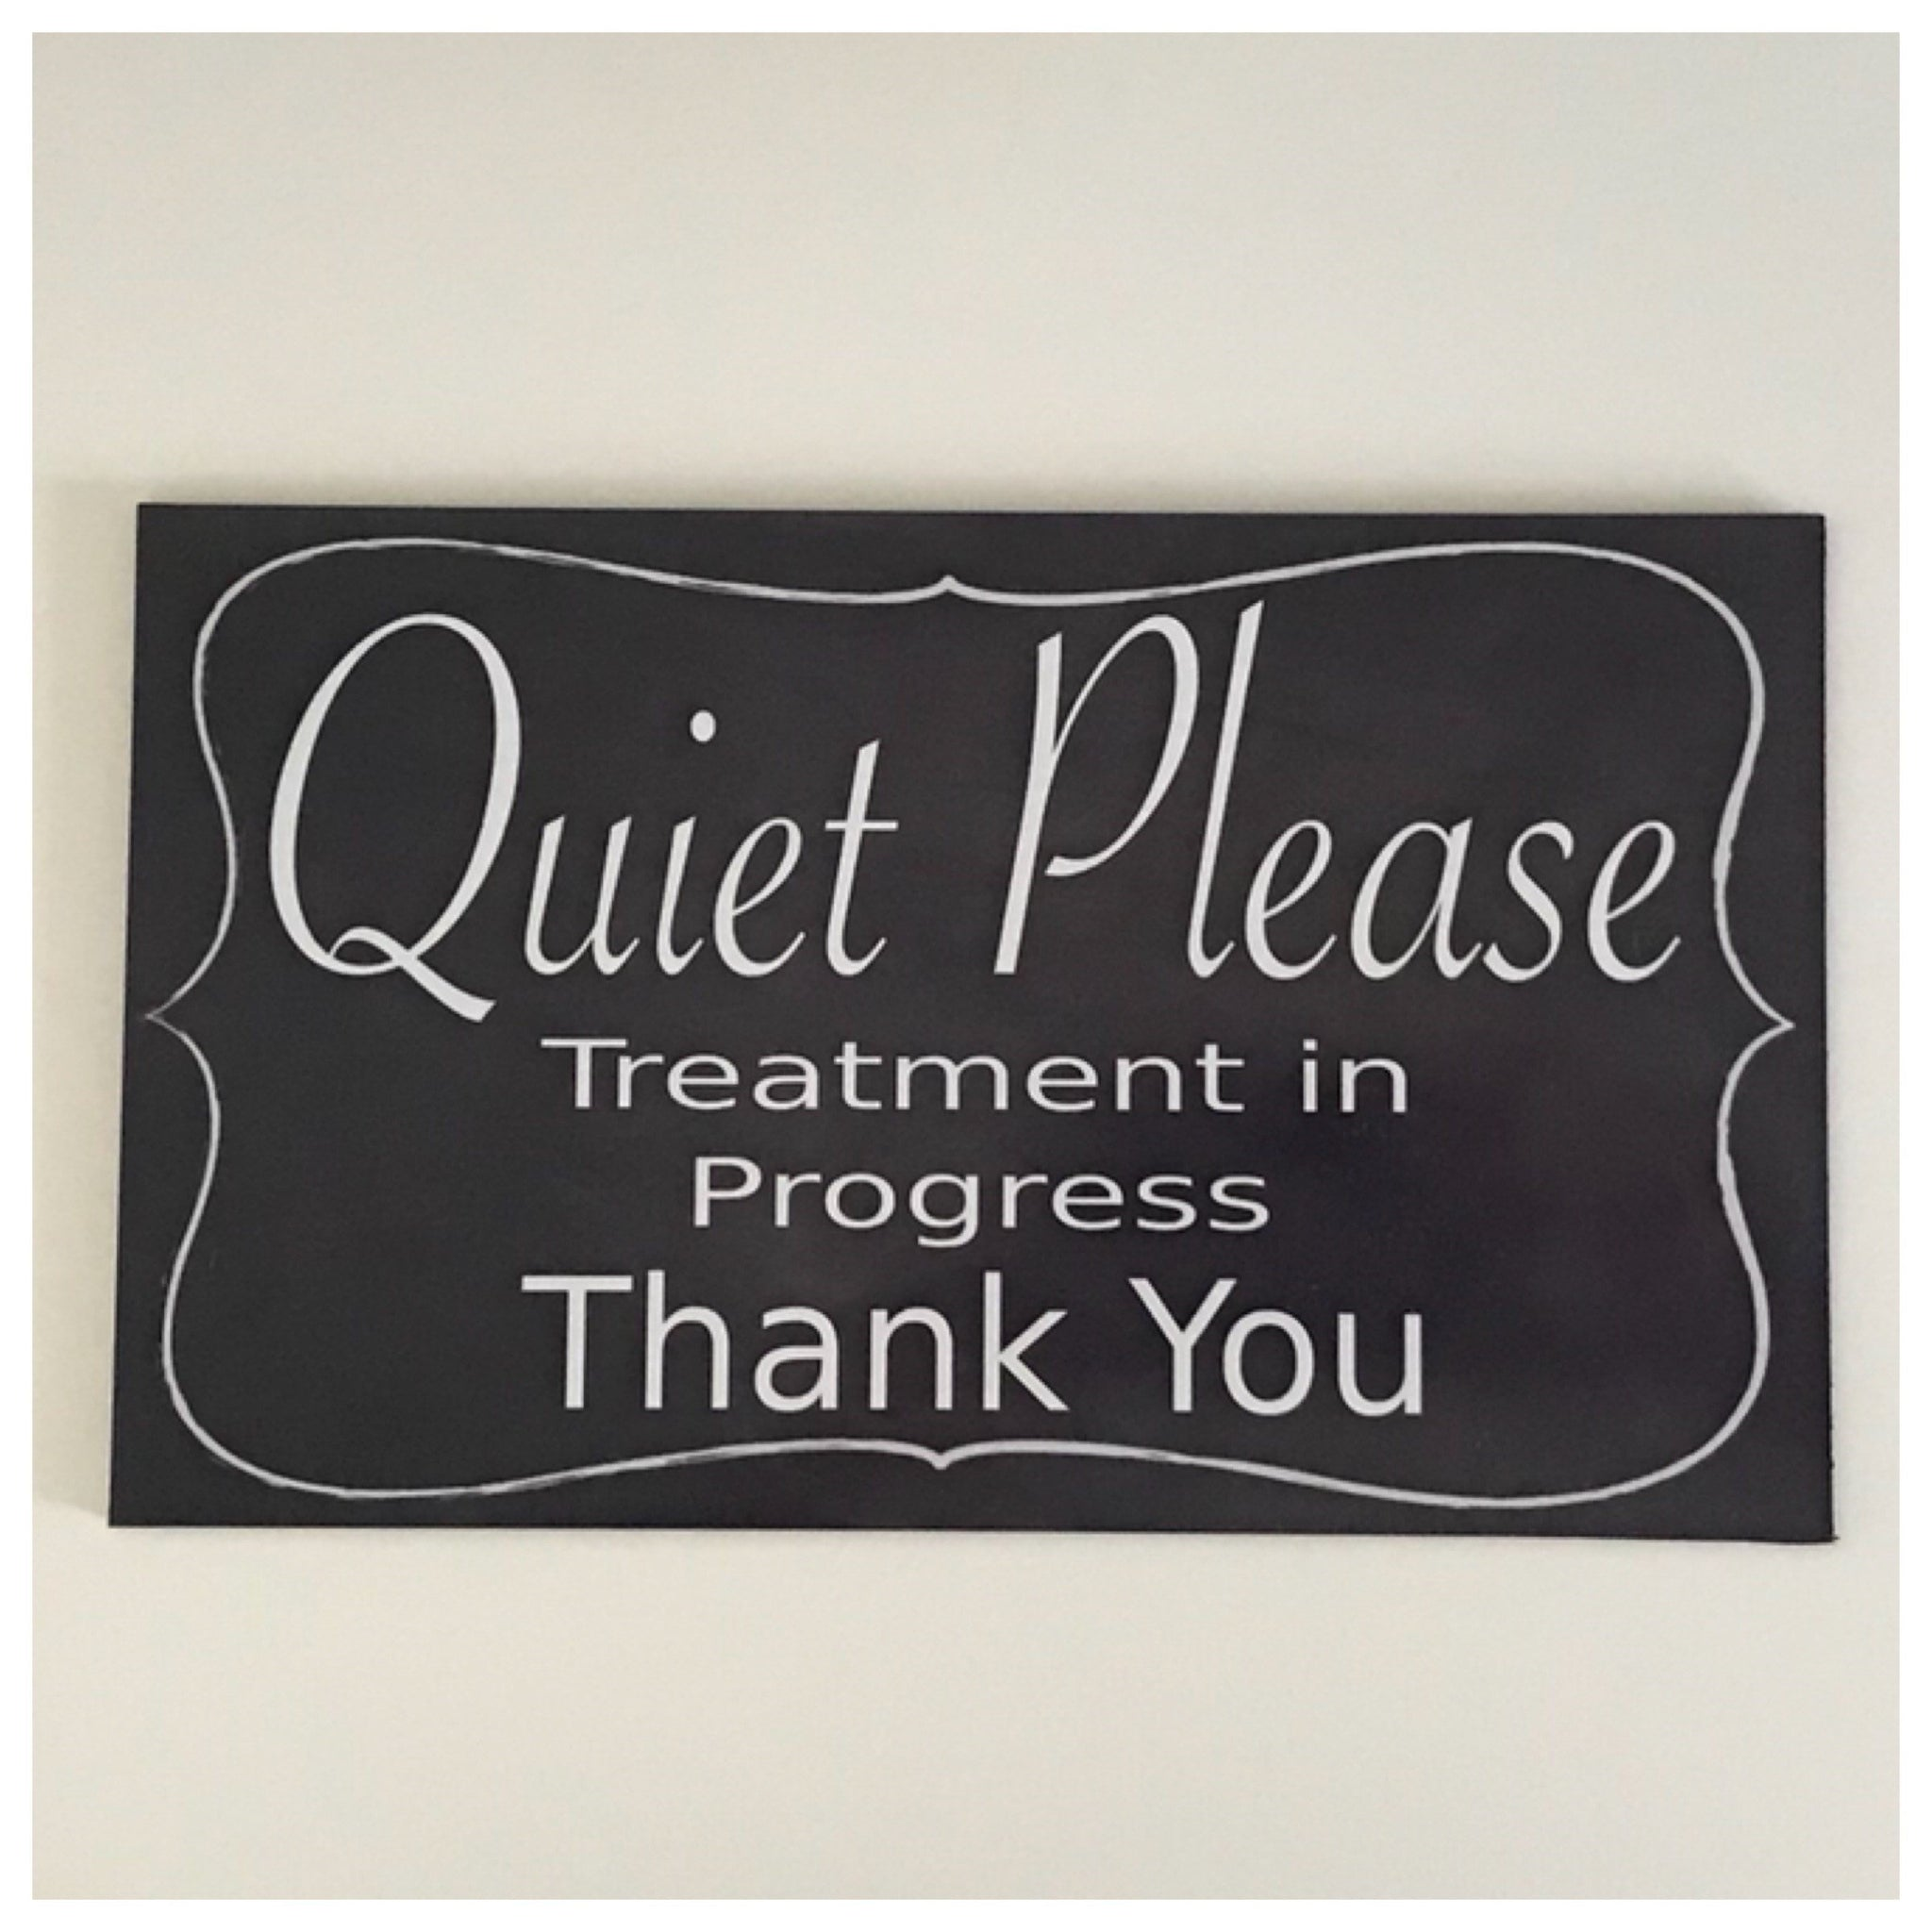 Quiet Please Clinic Treatment Business Room Sign Wall Plaque or Hanging Massage Plaques & Signs The Renmy Store